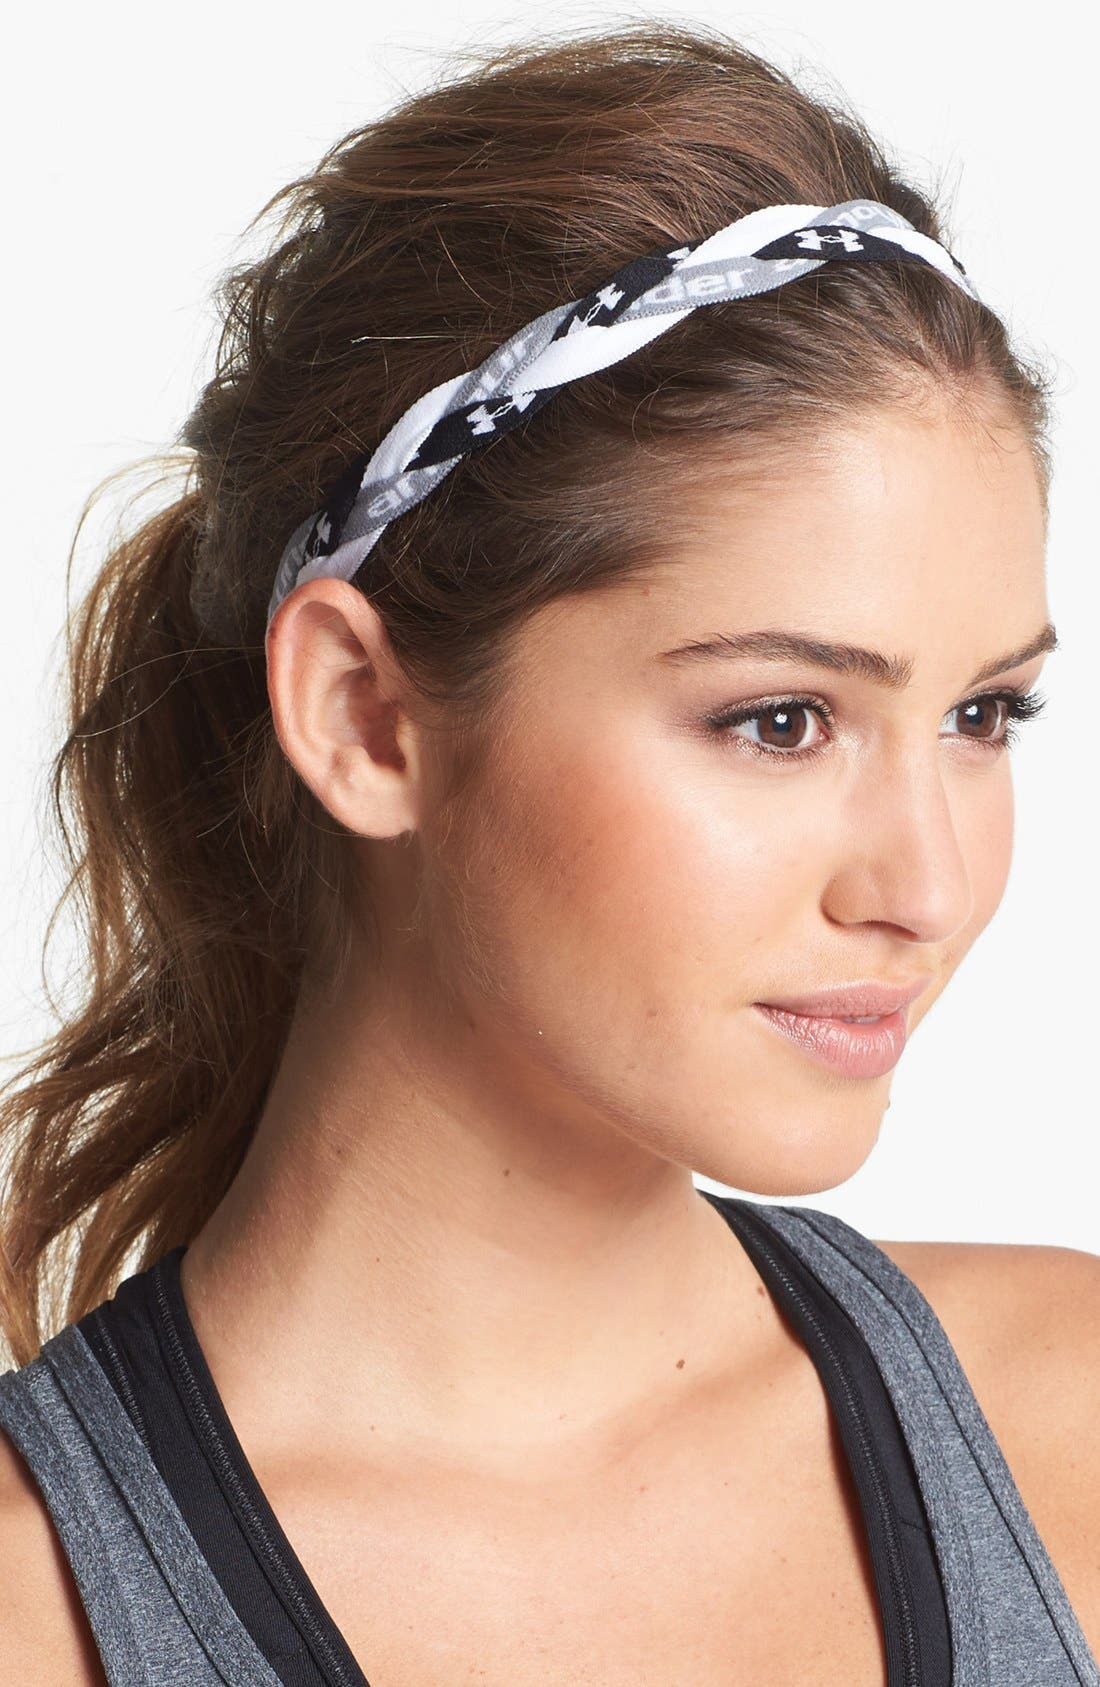 Alternate Image 1 Selected - Under Armour Braided Headband